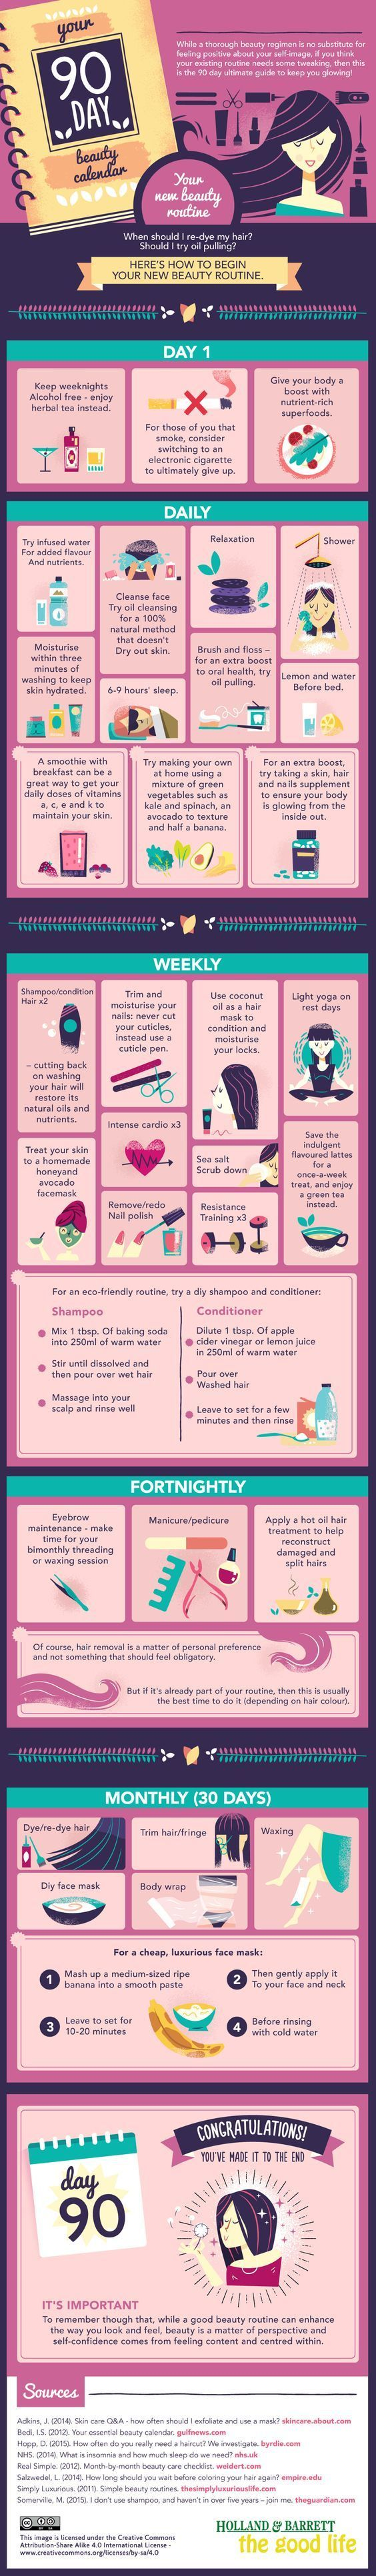 5 Easy Ways To Stay Healthy And Fit